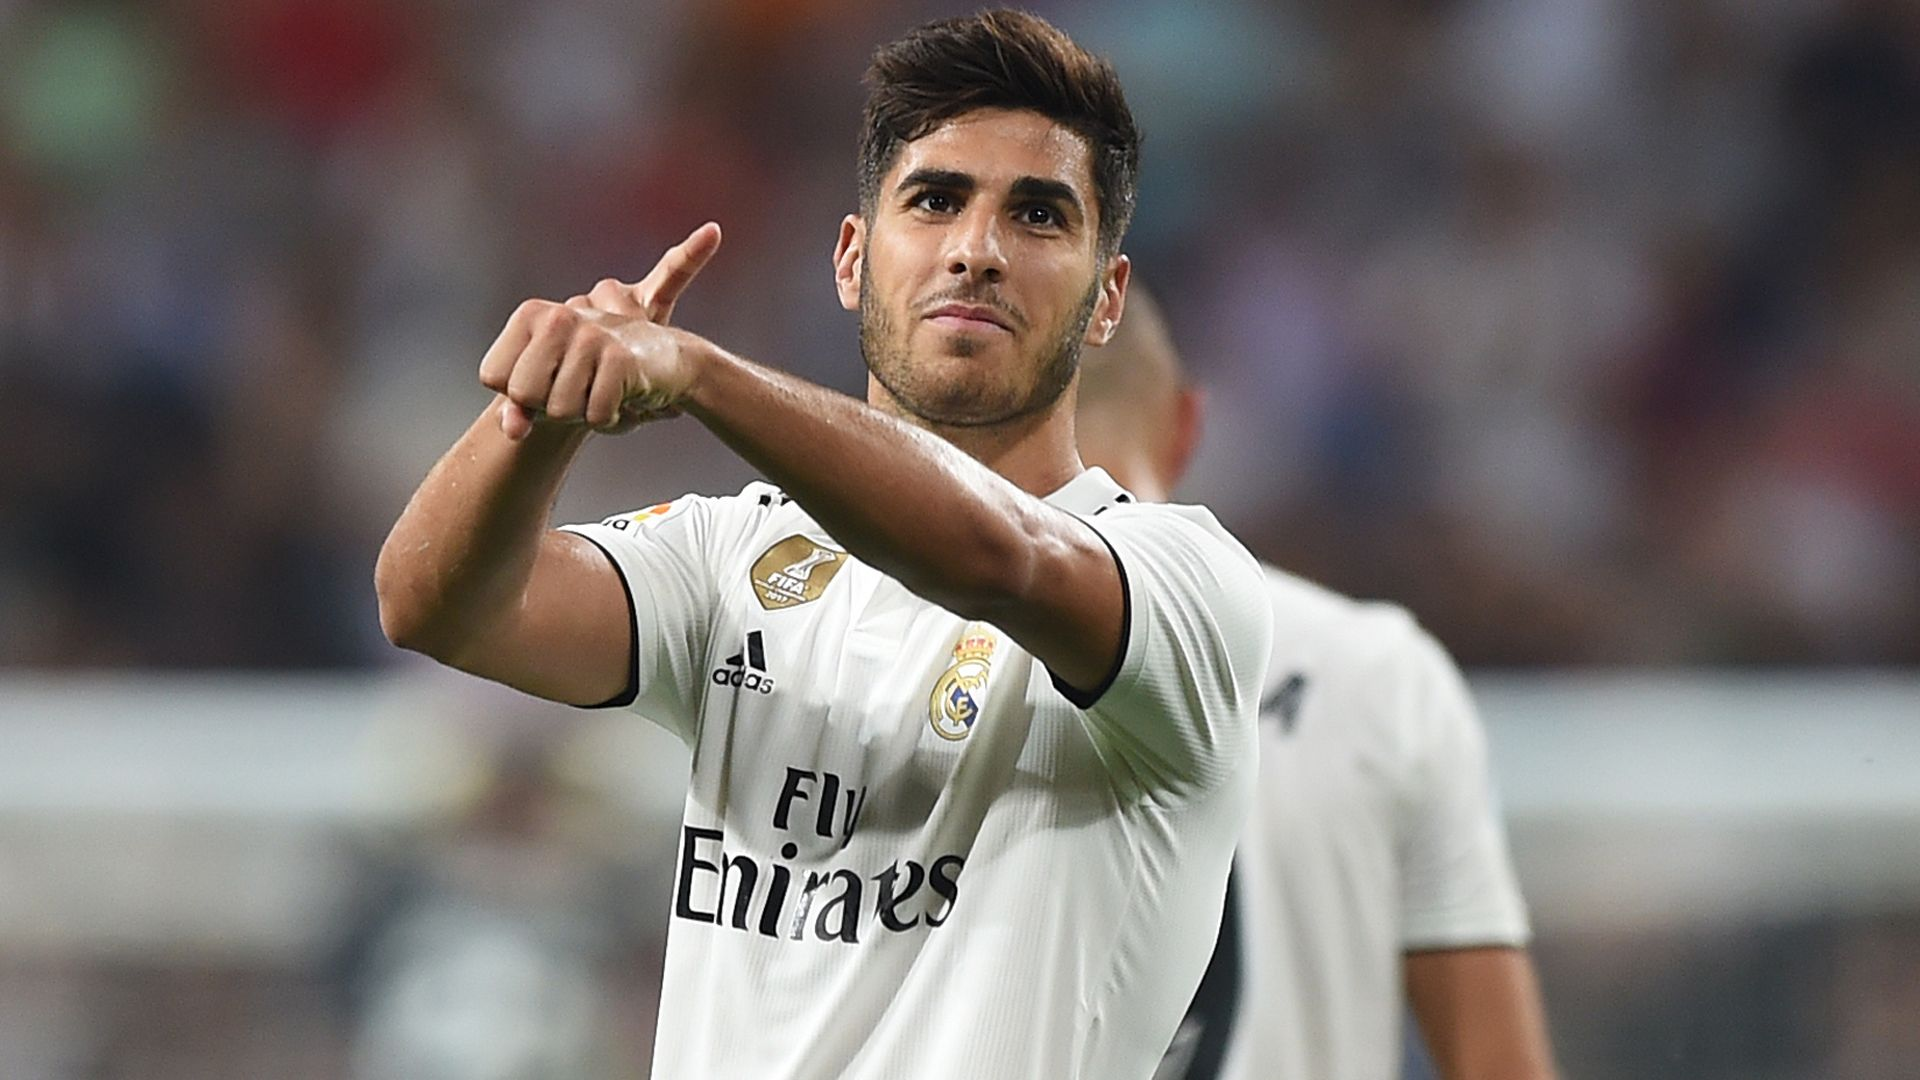 La Liga reporter claims Liverpool FC want to sign 22-year-old l Marco Asensio - Bóng Đá